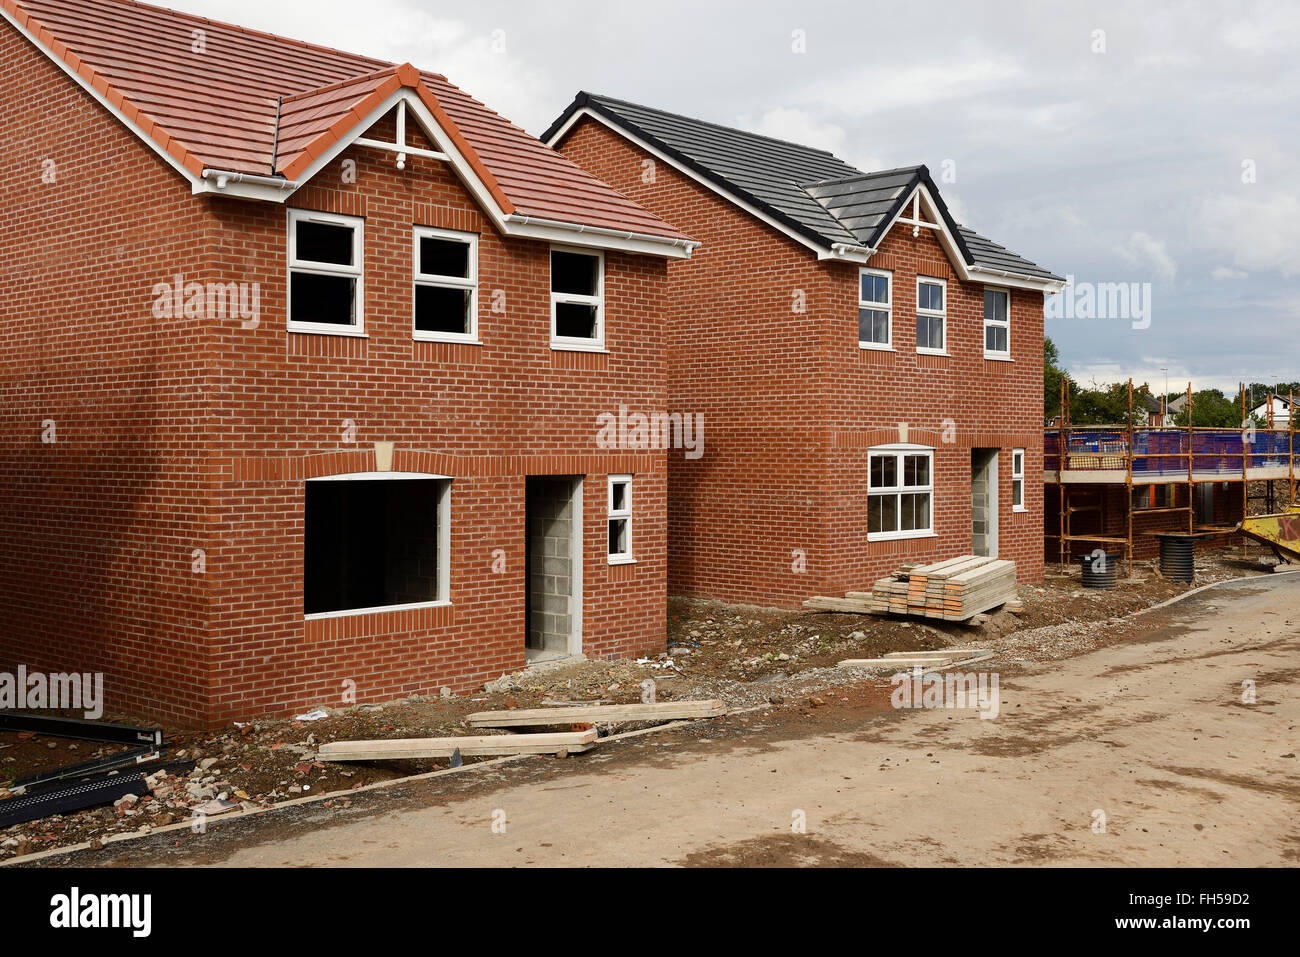 A construction site of new build houses in Lancashire UK - Stock Image